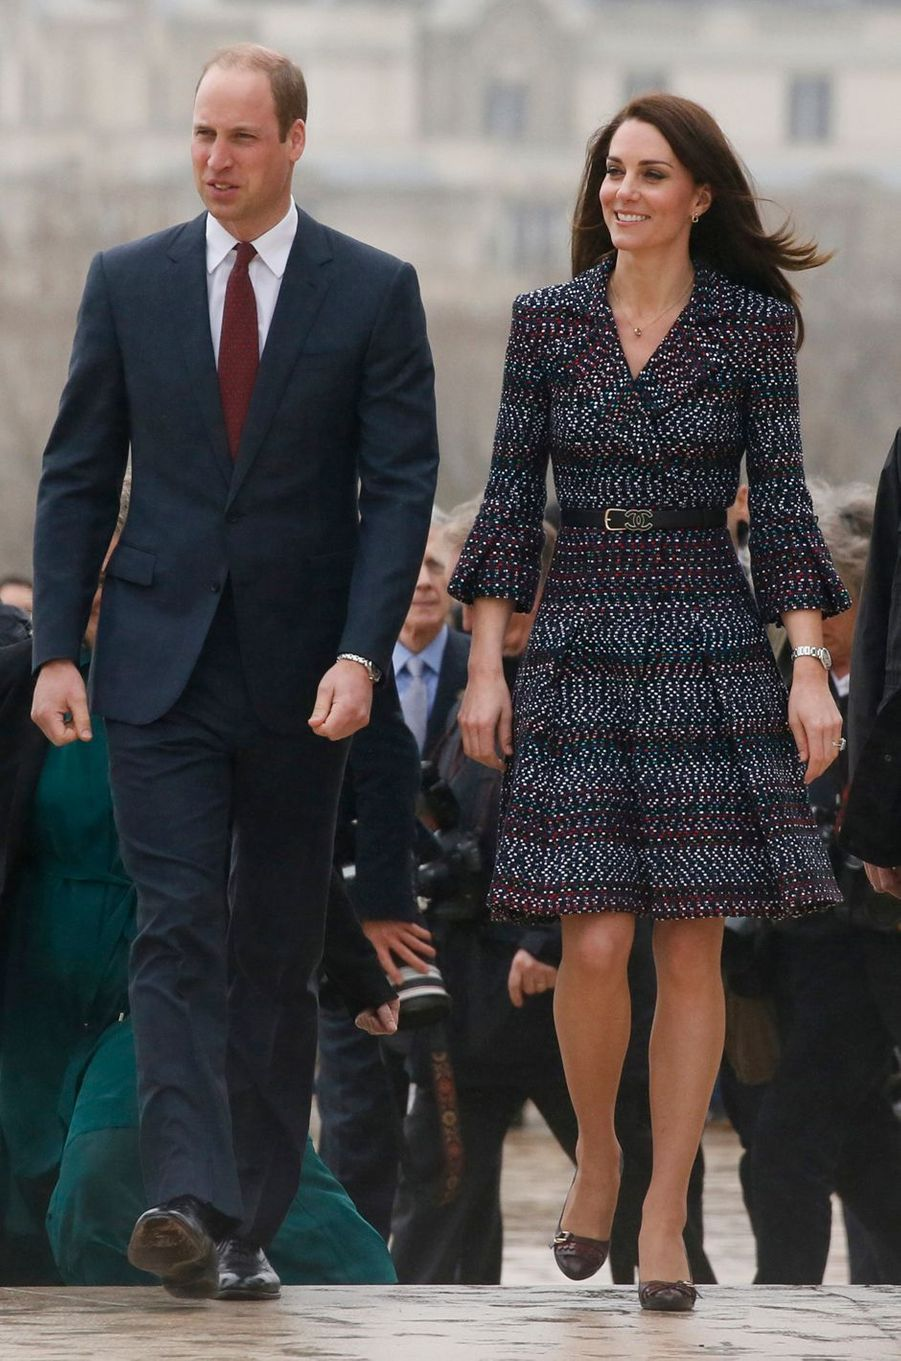 La duchesse de Cambridge, née Kate Middleton, en Chanel à Paris le 18 mars 2017